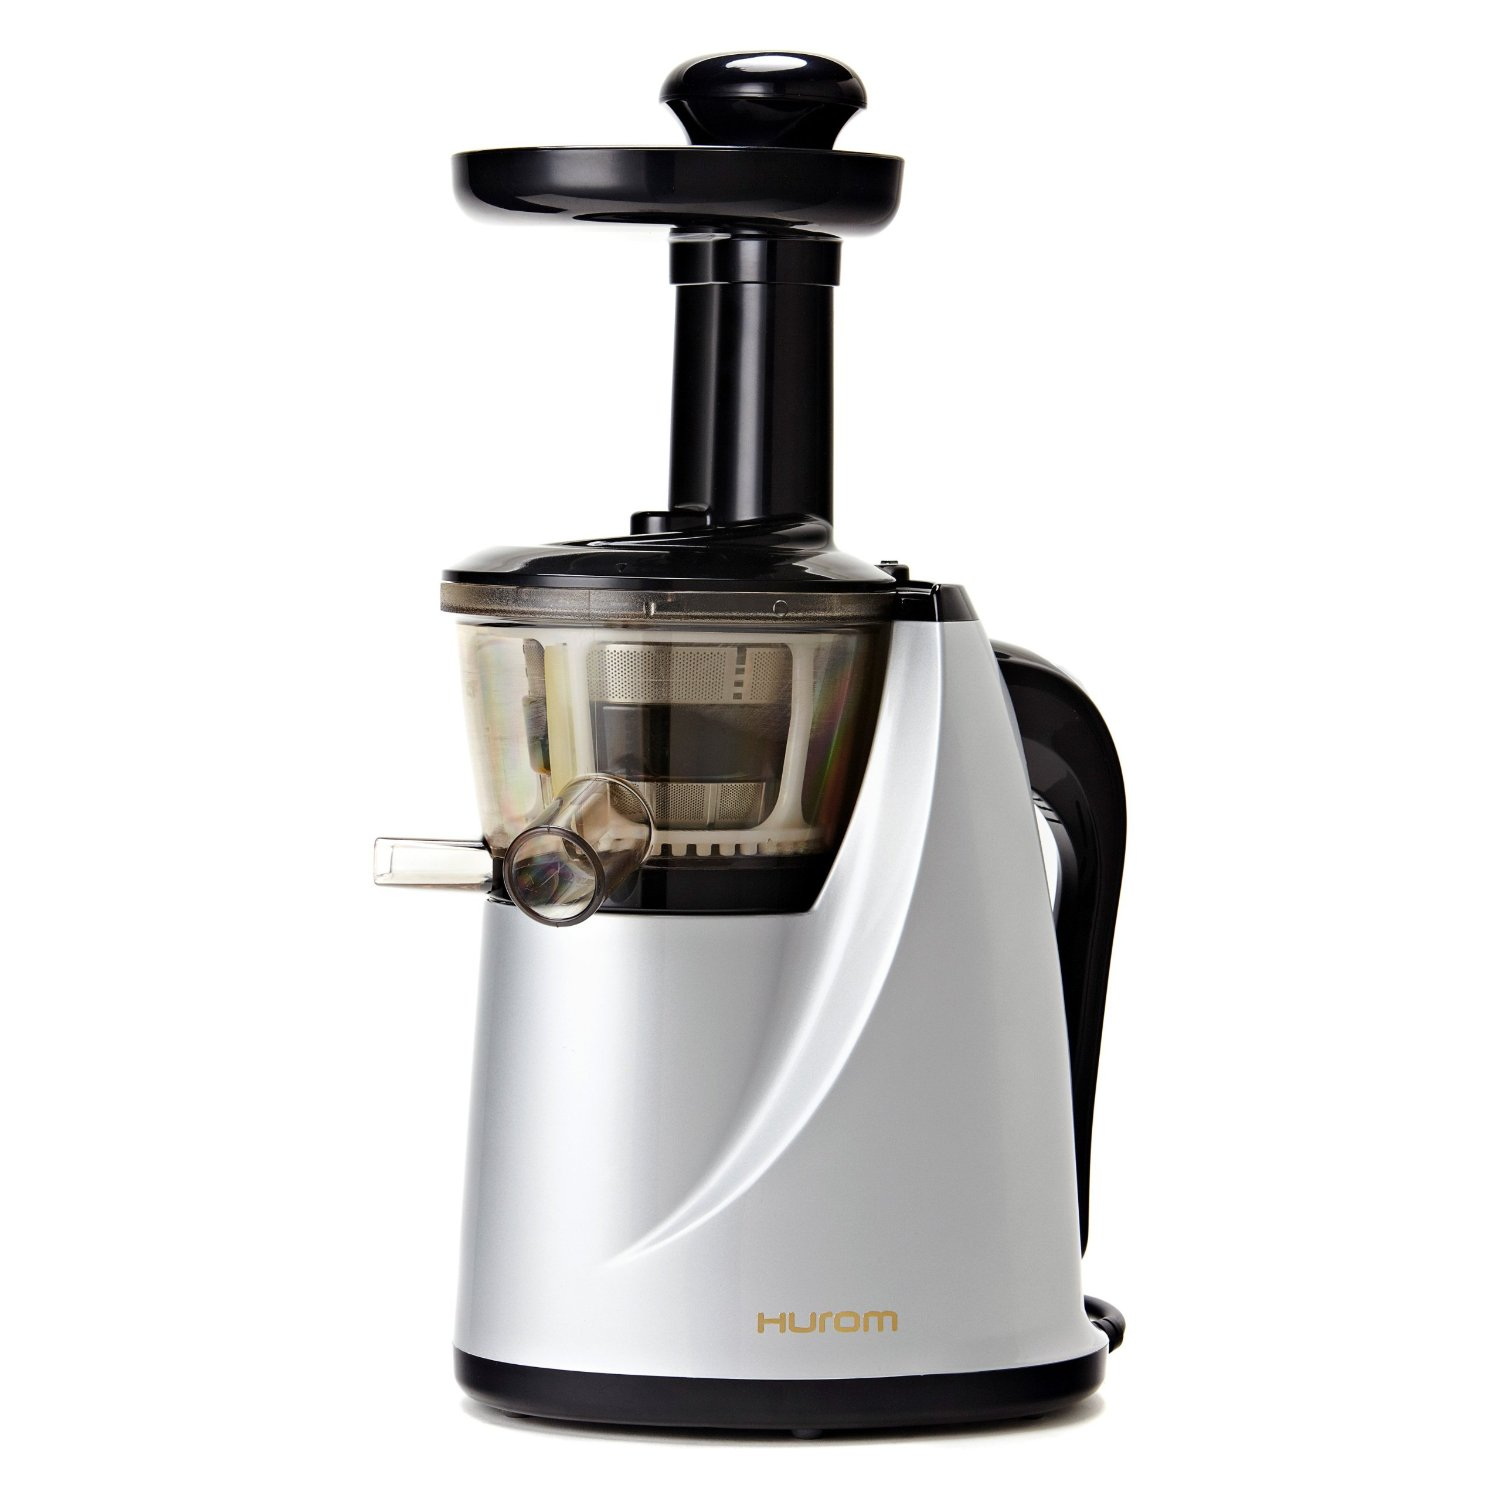 Hurom Slow Juicer Belgium : Hurom HU-100 Masticating Slow Juicer Review - Best Cold Press Juicers